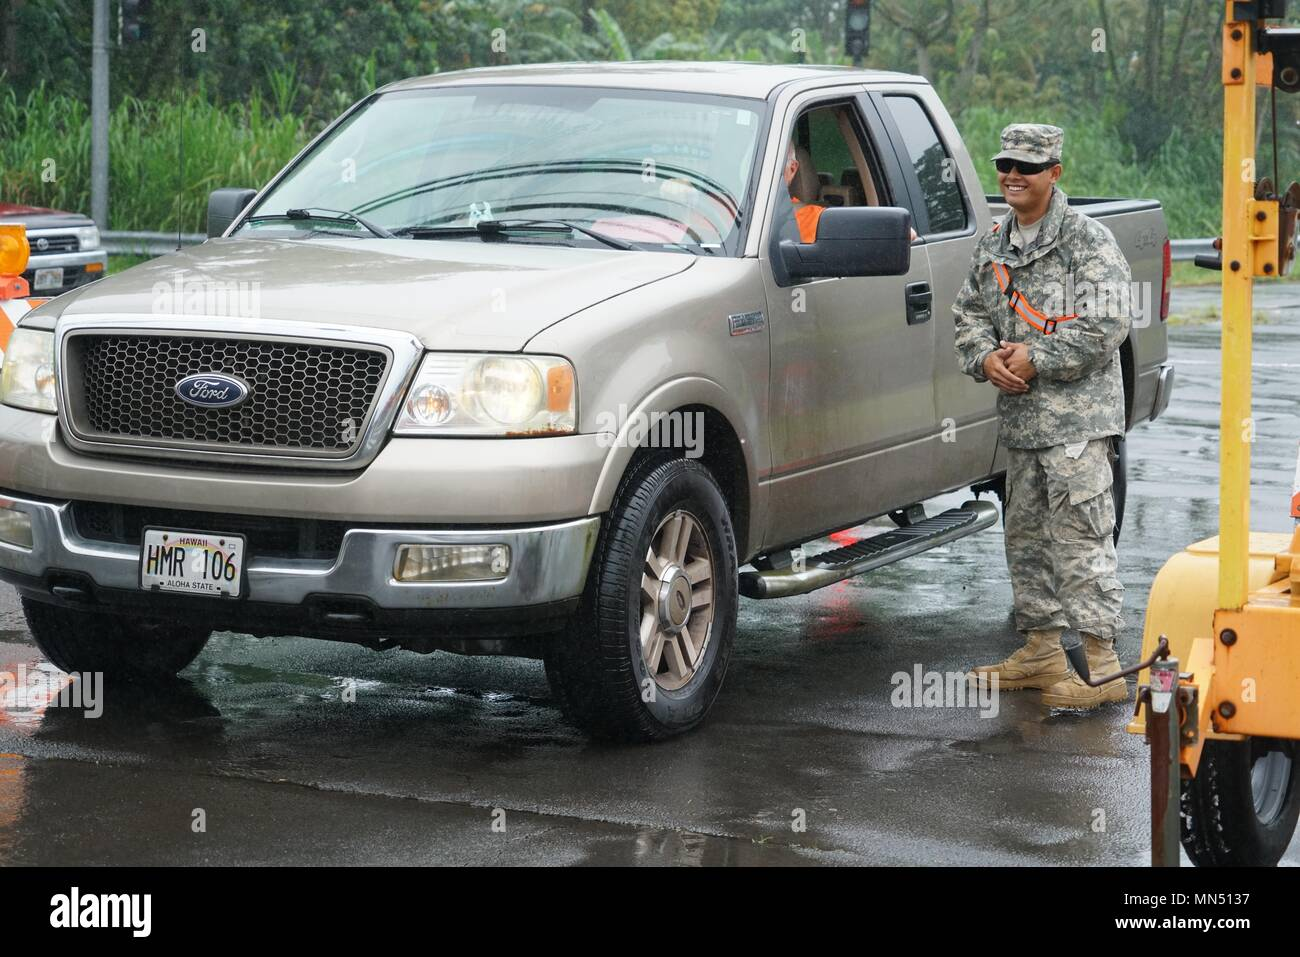 SPC Robert Harrington, Task Force Hawaii Security Team, mans an access control point outside Pahoa High School, Pahoa, May 08, 2018. The Hawaii National Guard has be activated to assist Hawaii County government agencies in response to the volcanic outbreak on Hawaii Island the operation is being referred to as Task Force Hawaii. (U.S. Air National Guard Photo By Tech. Sgt. Andrew Jackson) - Stock Image